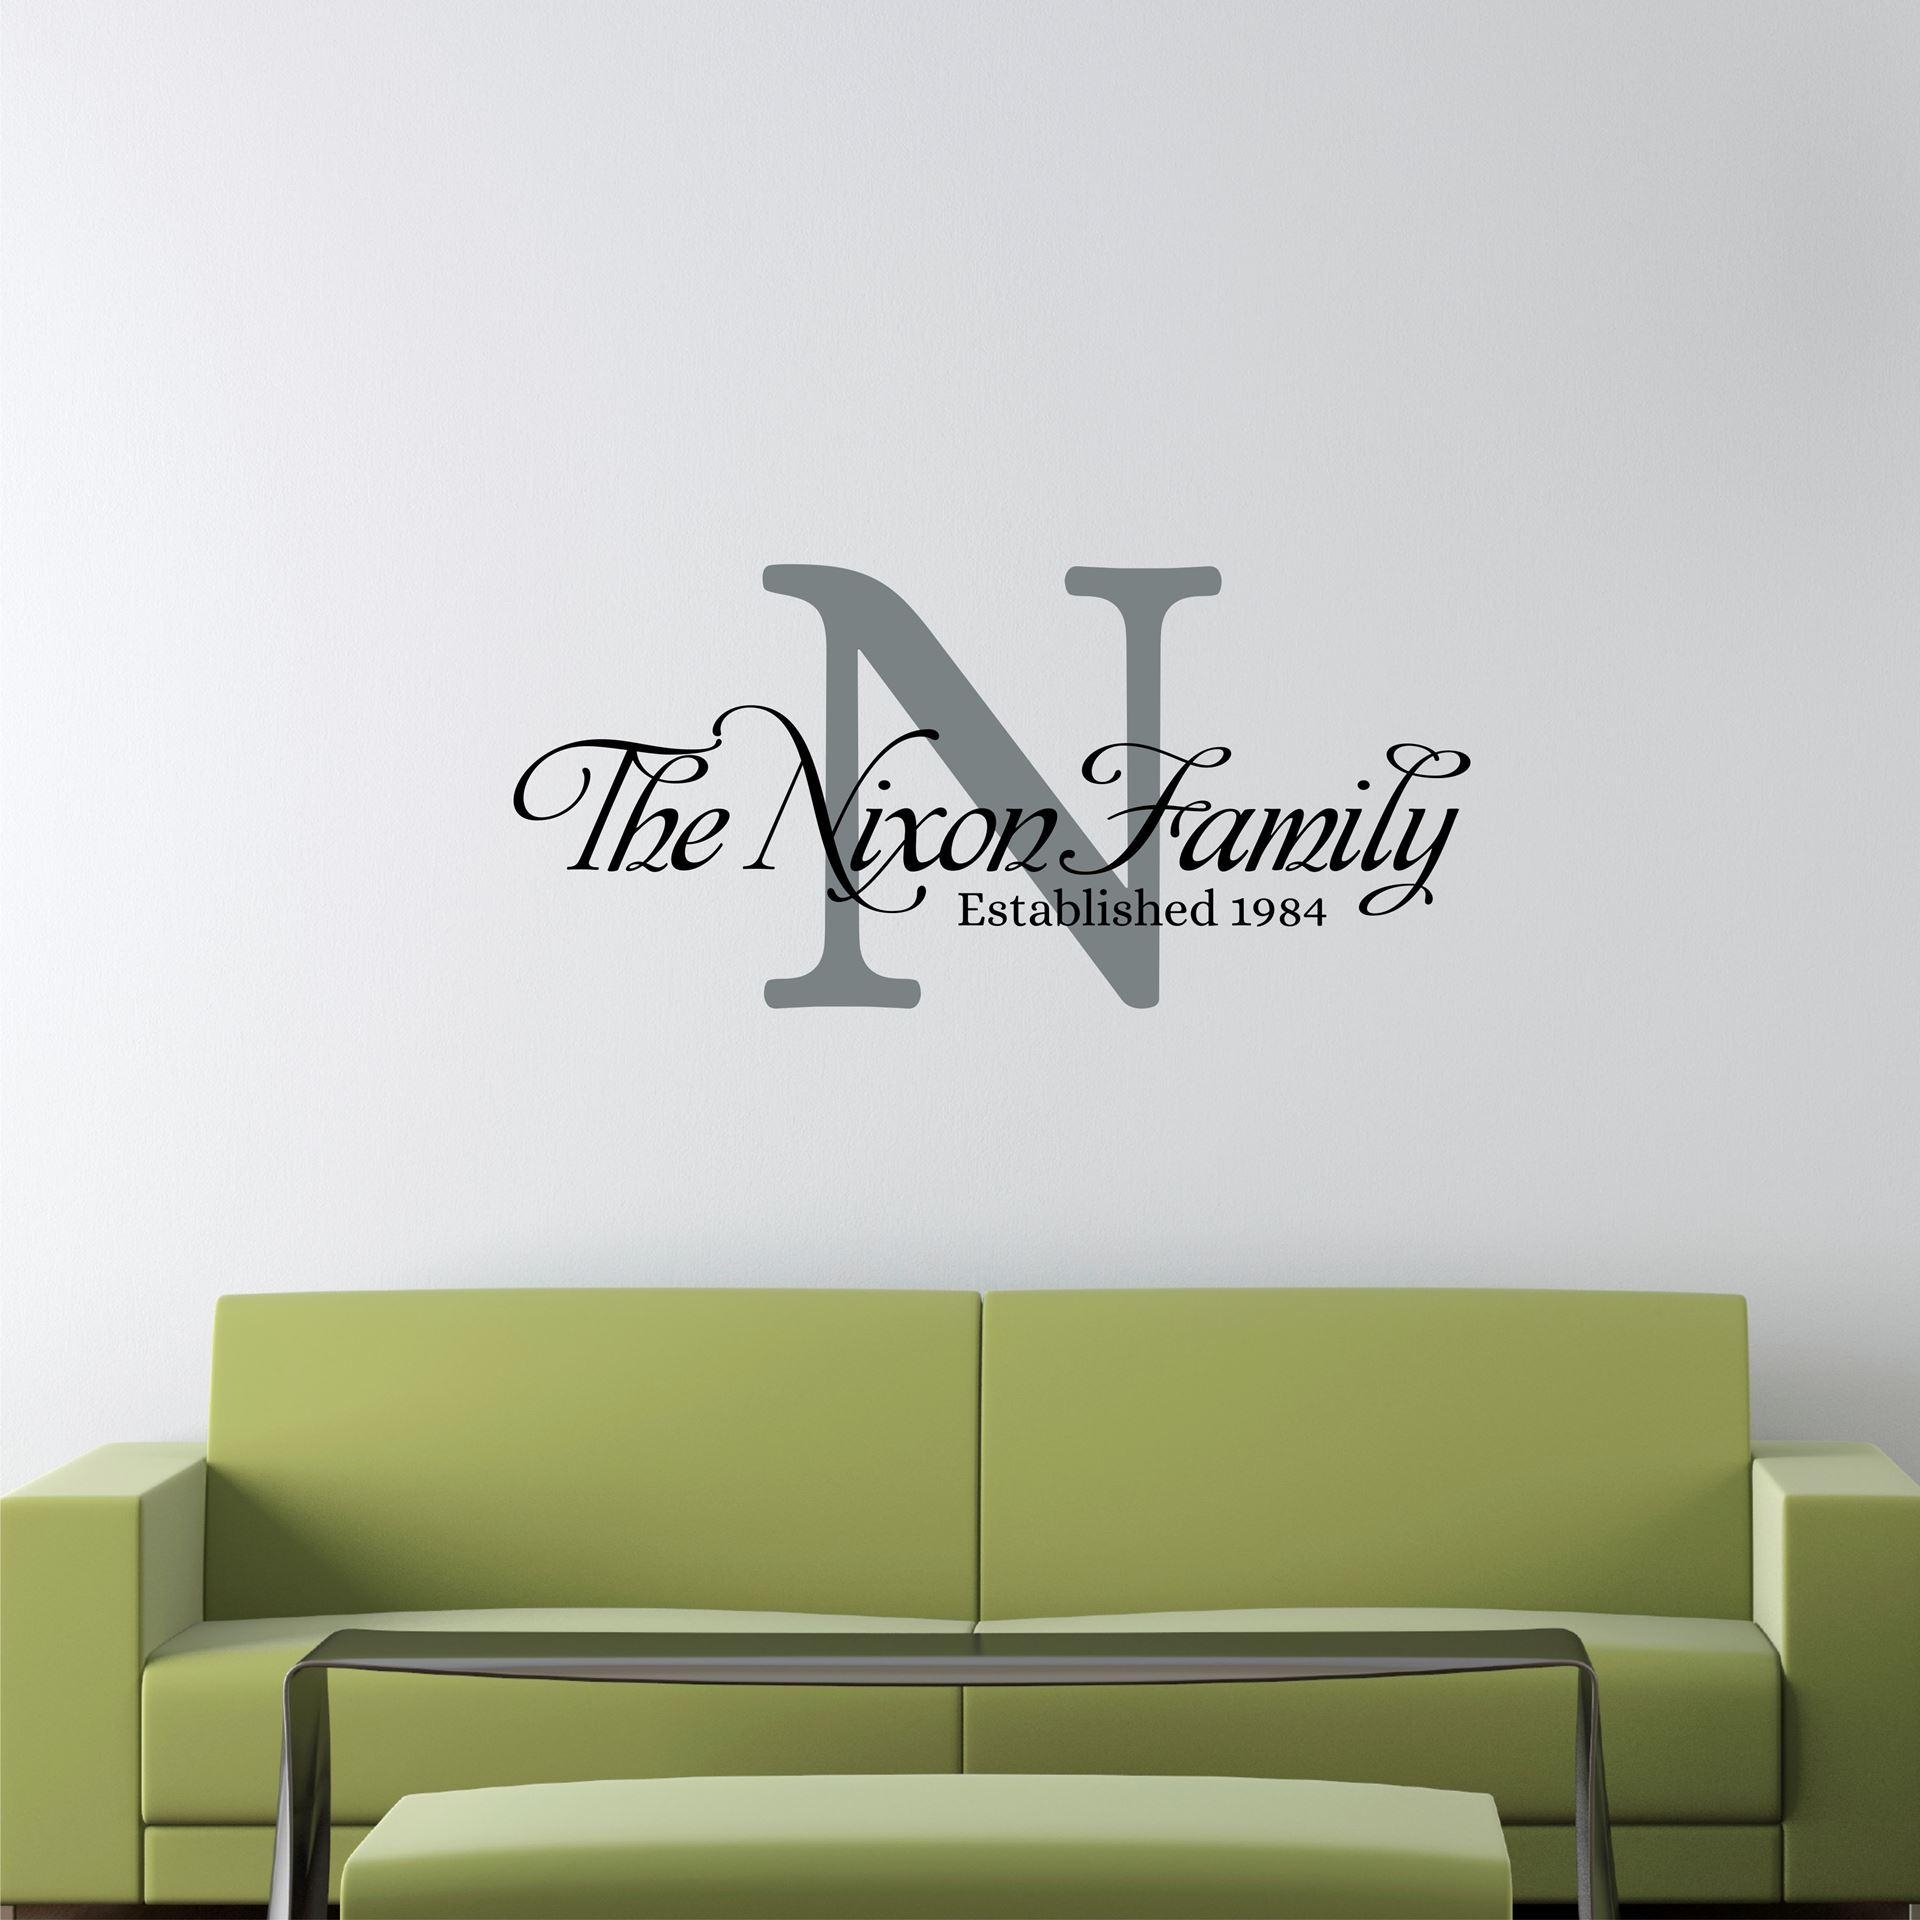 Amusing 25+ Personalized Last Name Wall Art Design Decoration Of Regarding Last Name Wall Art (Image 2 of 20)